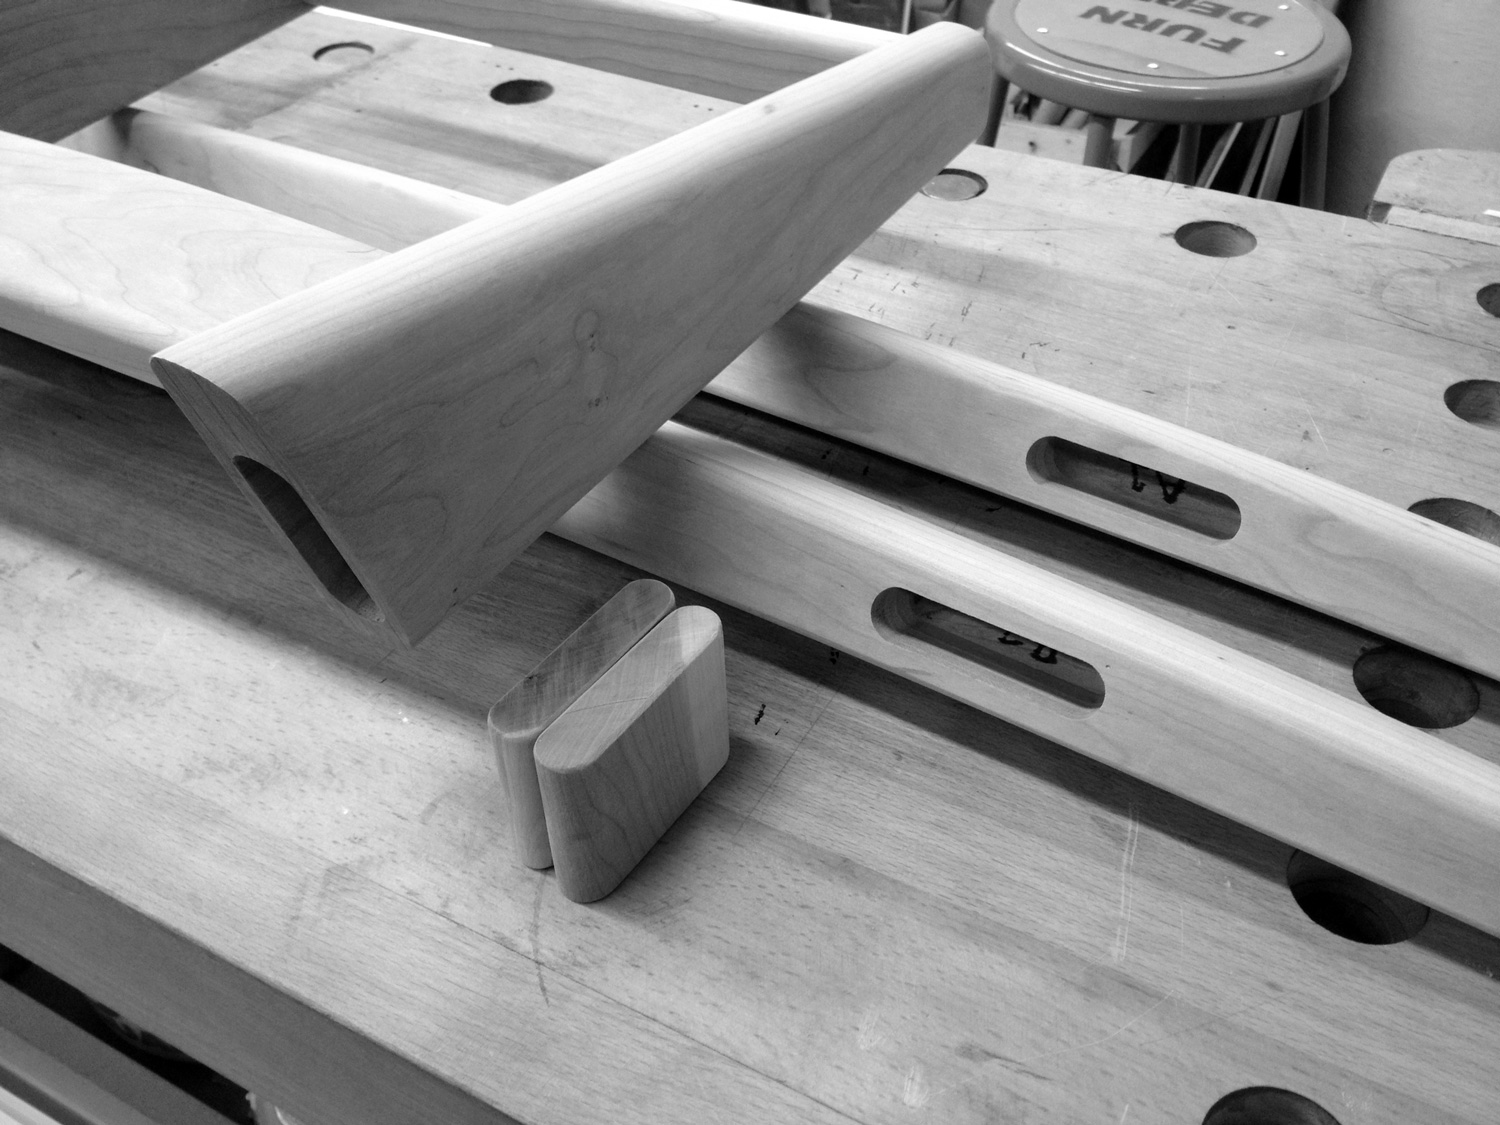 2012_Shaped_Mortise_and_Tenon.jpg